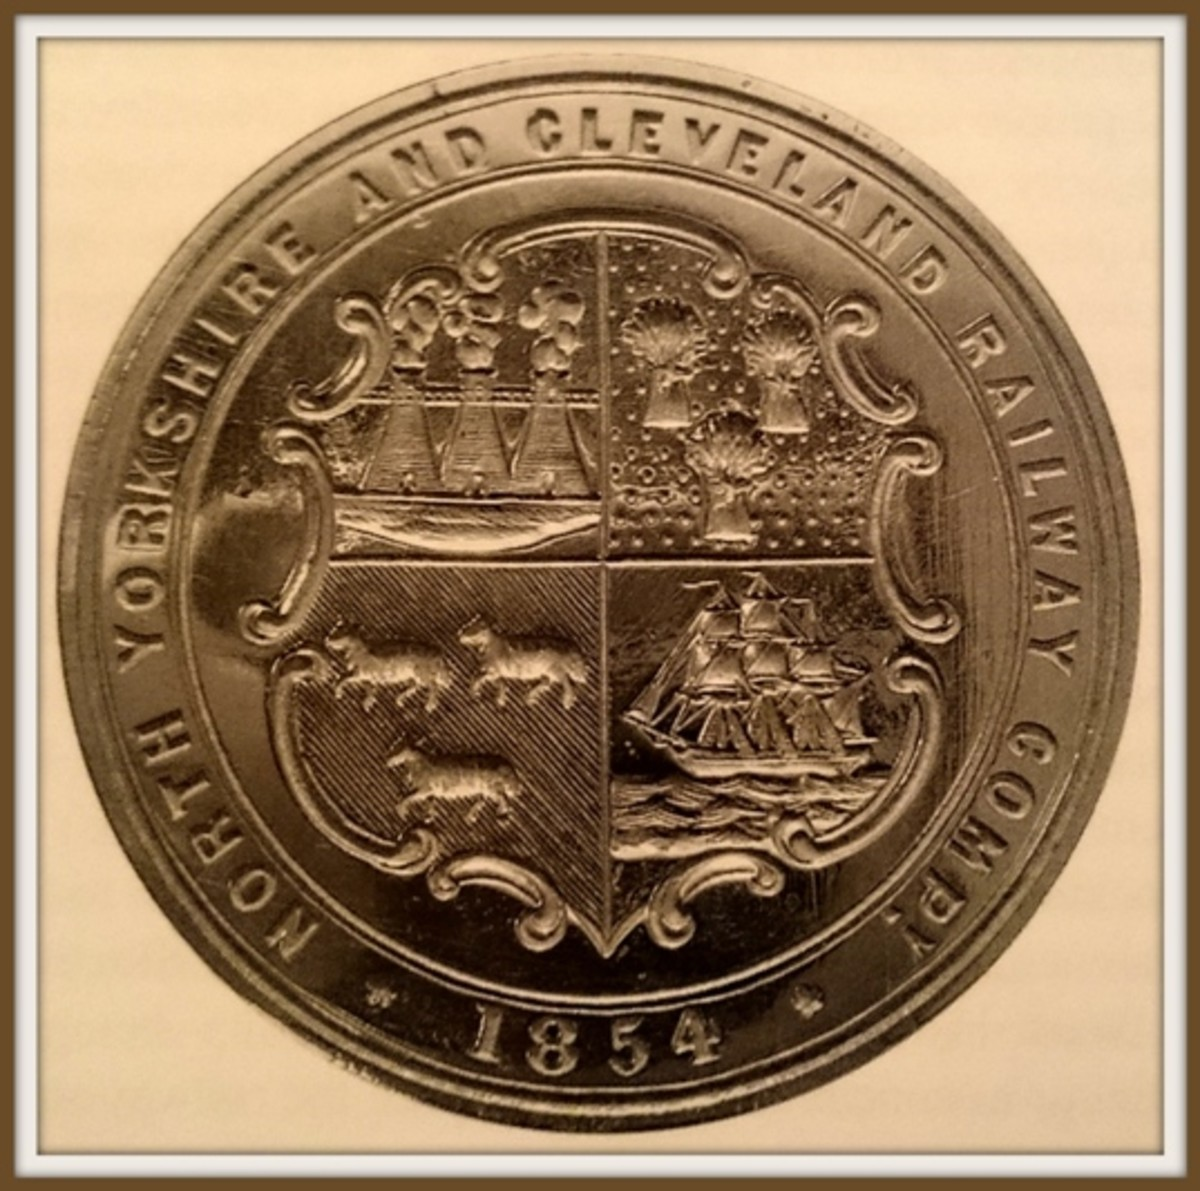 Seal of the North Yorkshire & Cleveland Railway that was absorbed by ...